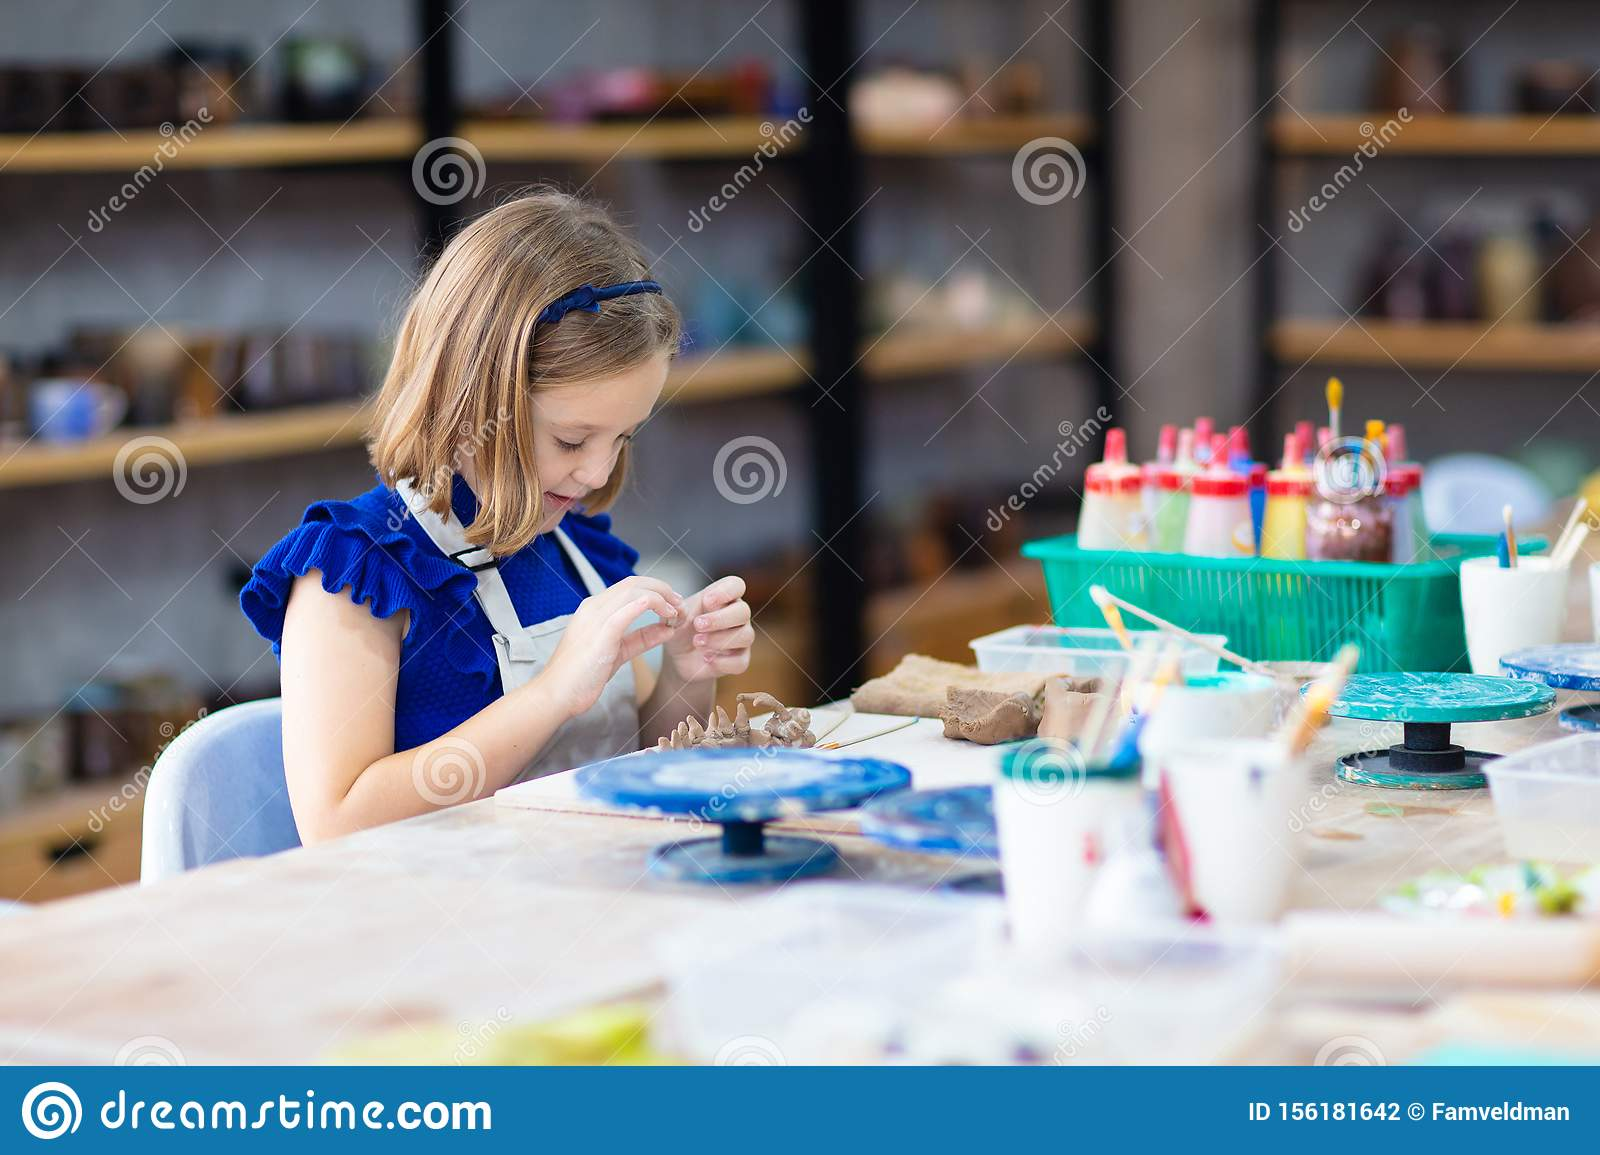 Child At Pottery Wheel Kids Arts And Crafts Class Stock Photo Image Of Ceramics Crafts 156181642